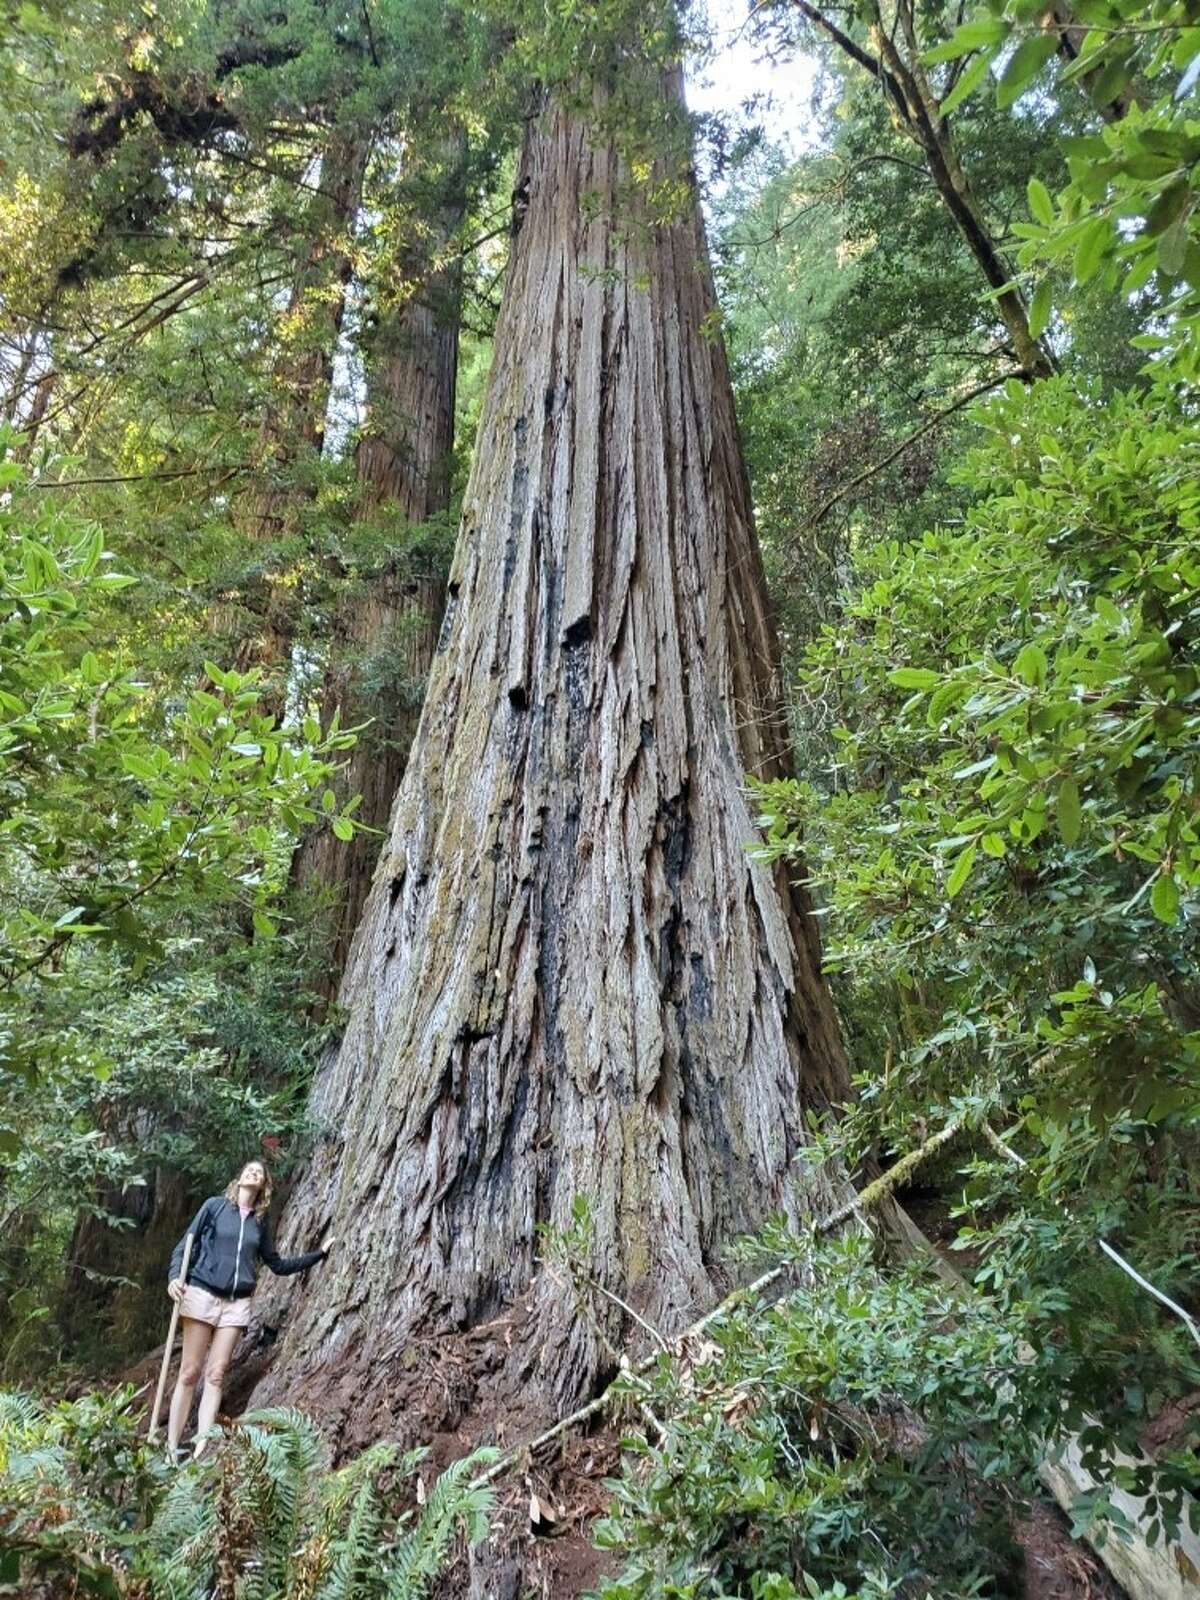 The author poses with Hyperion, the world's tallest tree. She later learned that when many people walk and stand in the same spots near redwoods, they can damage the understory and roots systems.